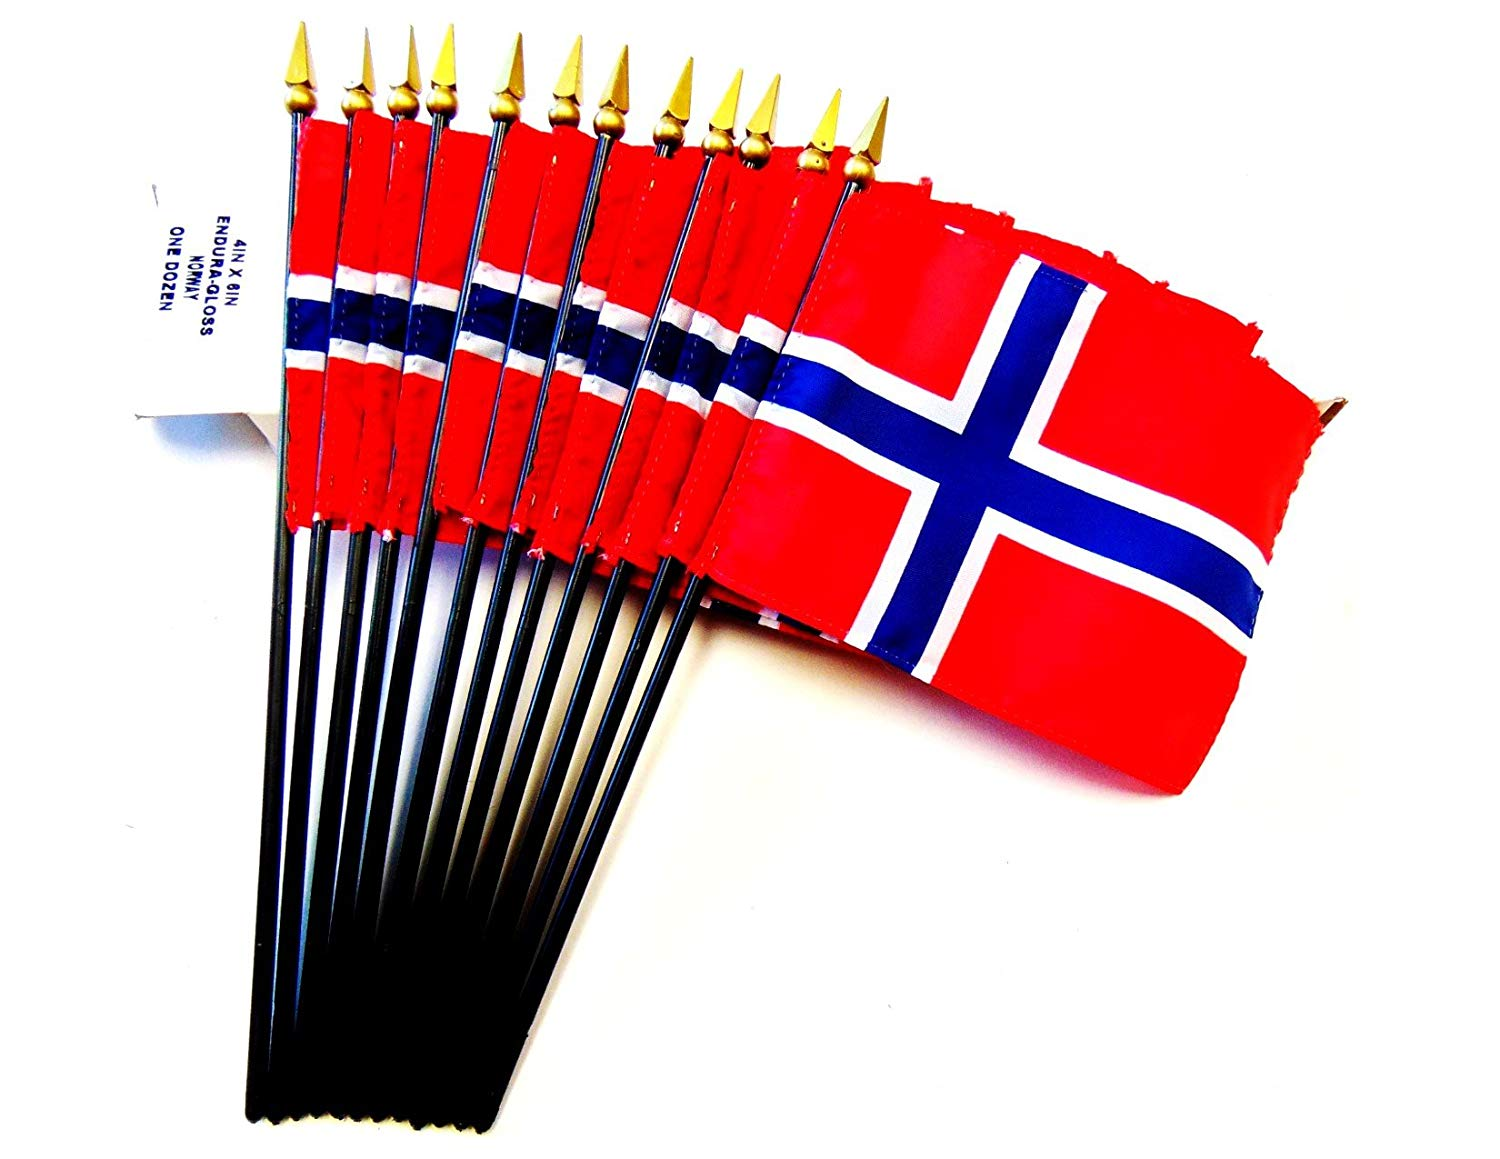 """MADE IN USA!! Box of 12 Norway 4""""x6"""" Miniature Desk & Table Flags; 12 American Made Small Mini Norwegian Flags in a Custom Made Cardboard Box Specifically Made for These Flags"""